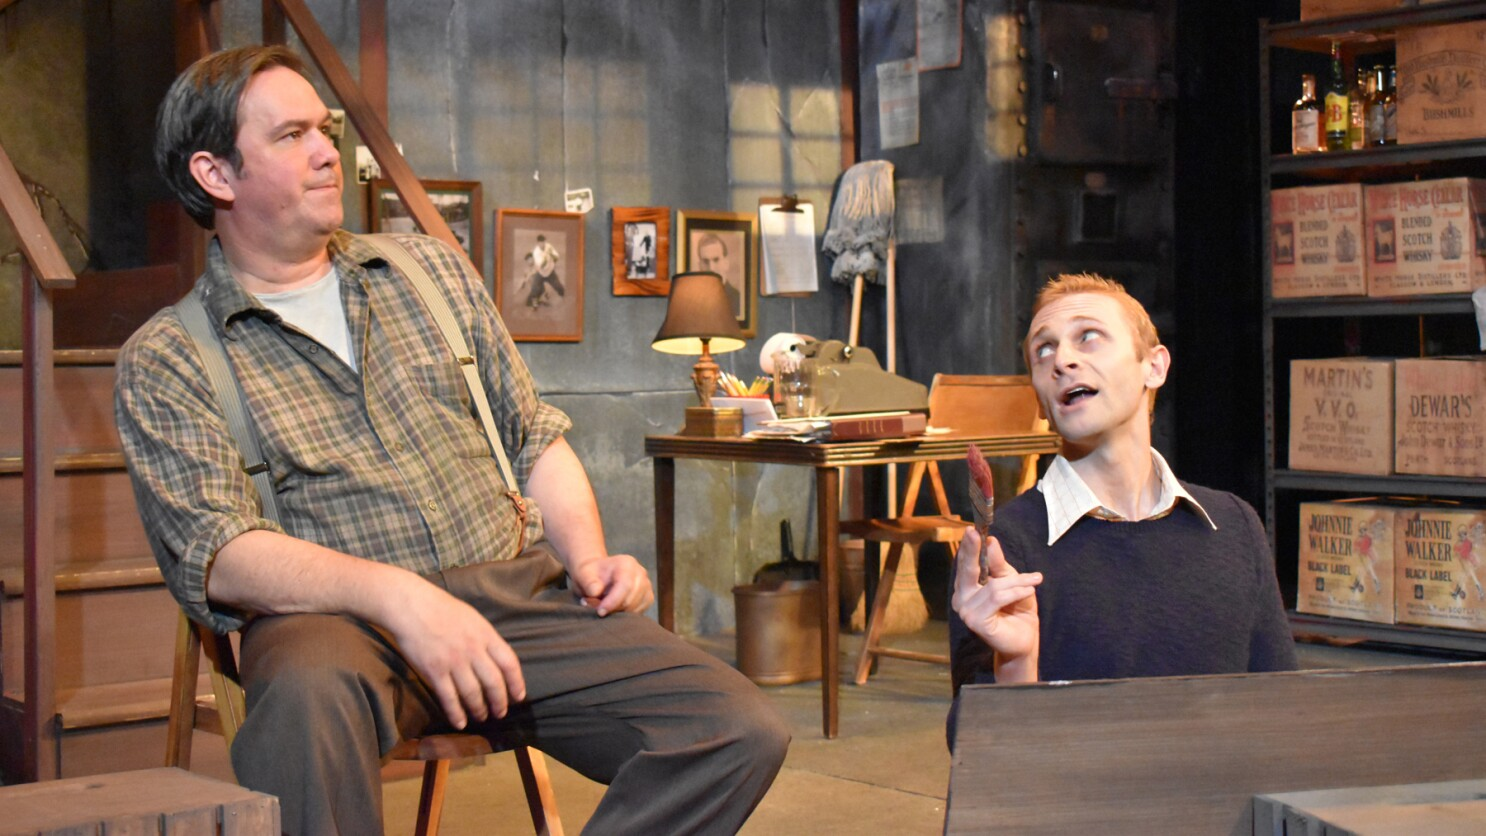 Pacific Resident Theatre serves up 'Andy Warhol's Tomato'